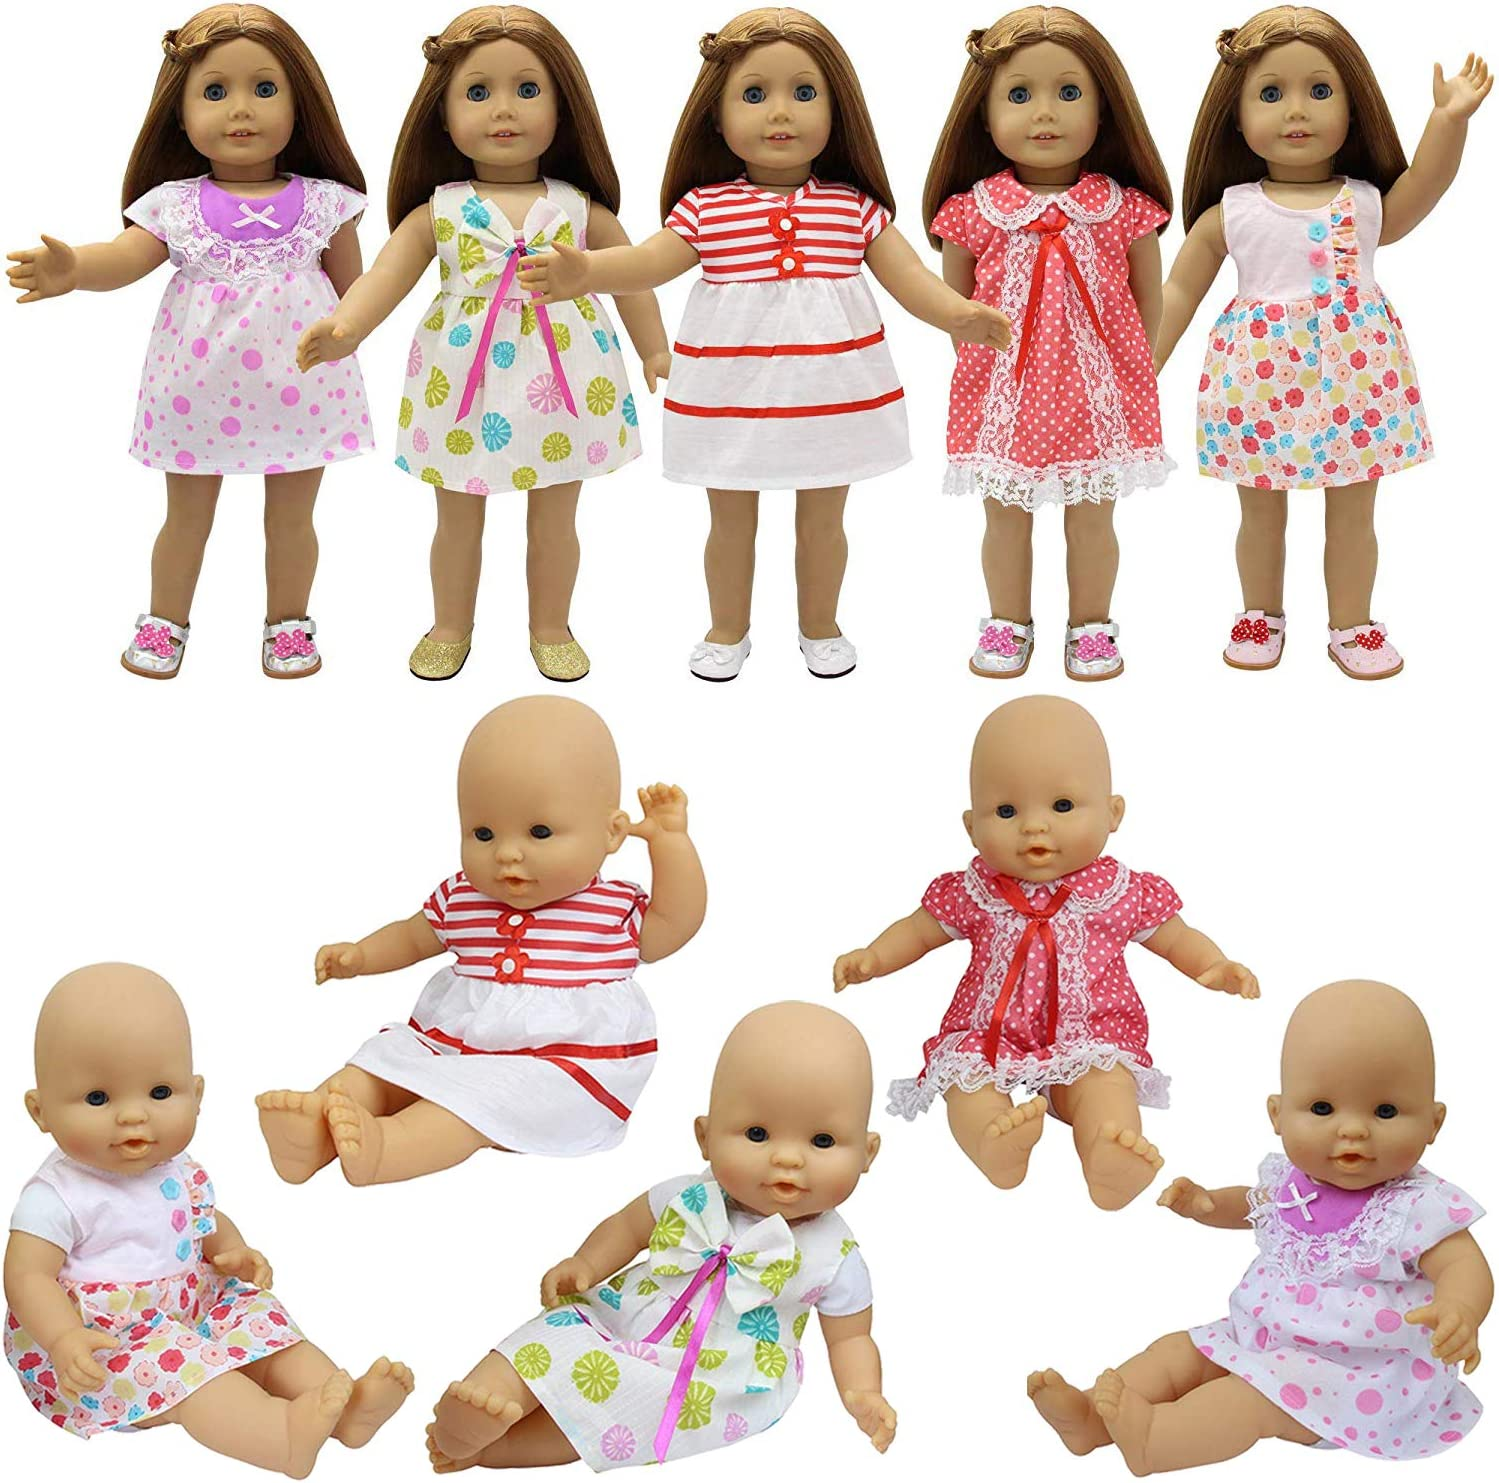 Amazon.com: ZITA ELEMENT 5 Pcs Fashion Cute Dresses for 14 Inch to 16 Inch  Baby Doll Clothes, American 18 Inch Girl Doll and Other 18 Inch Doll Clothes  Outfits Xmas Gift: Toys & Games